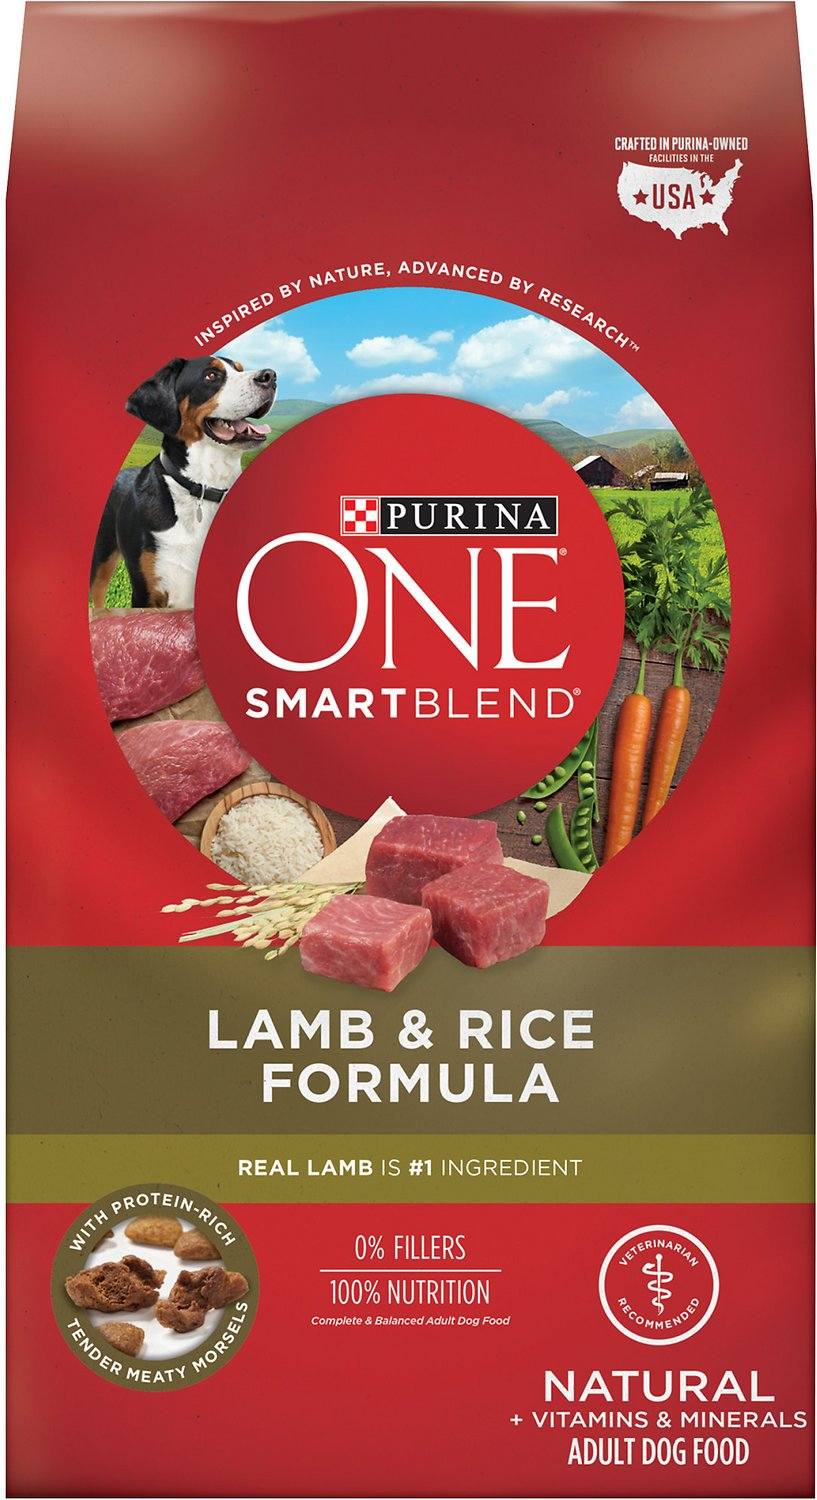 From gastrointestinal support to weight management, Purina® Pro Plan® Veterinary Diets are formulated with the well-being of dogs in mind. DOG FOOD PRODUCTS Purina® Pro Plan® Veterinary Diets are carefully formulated to provide optimal nutrition while meeting your cat's special needs.